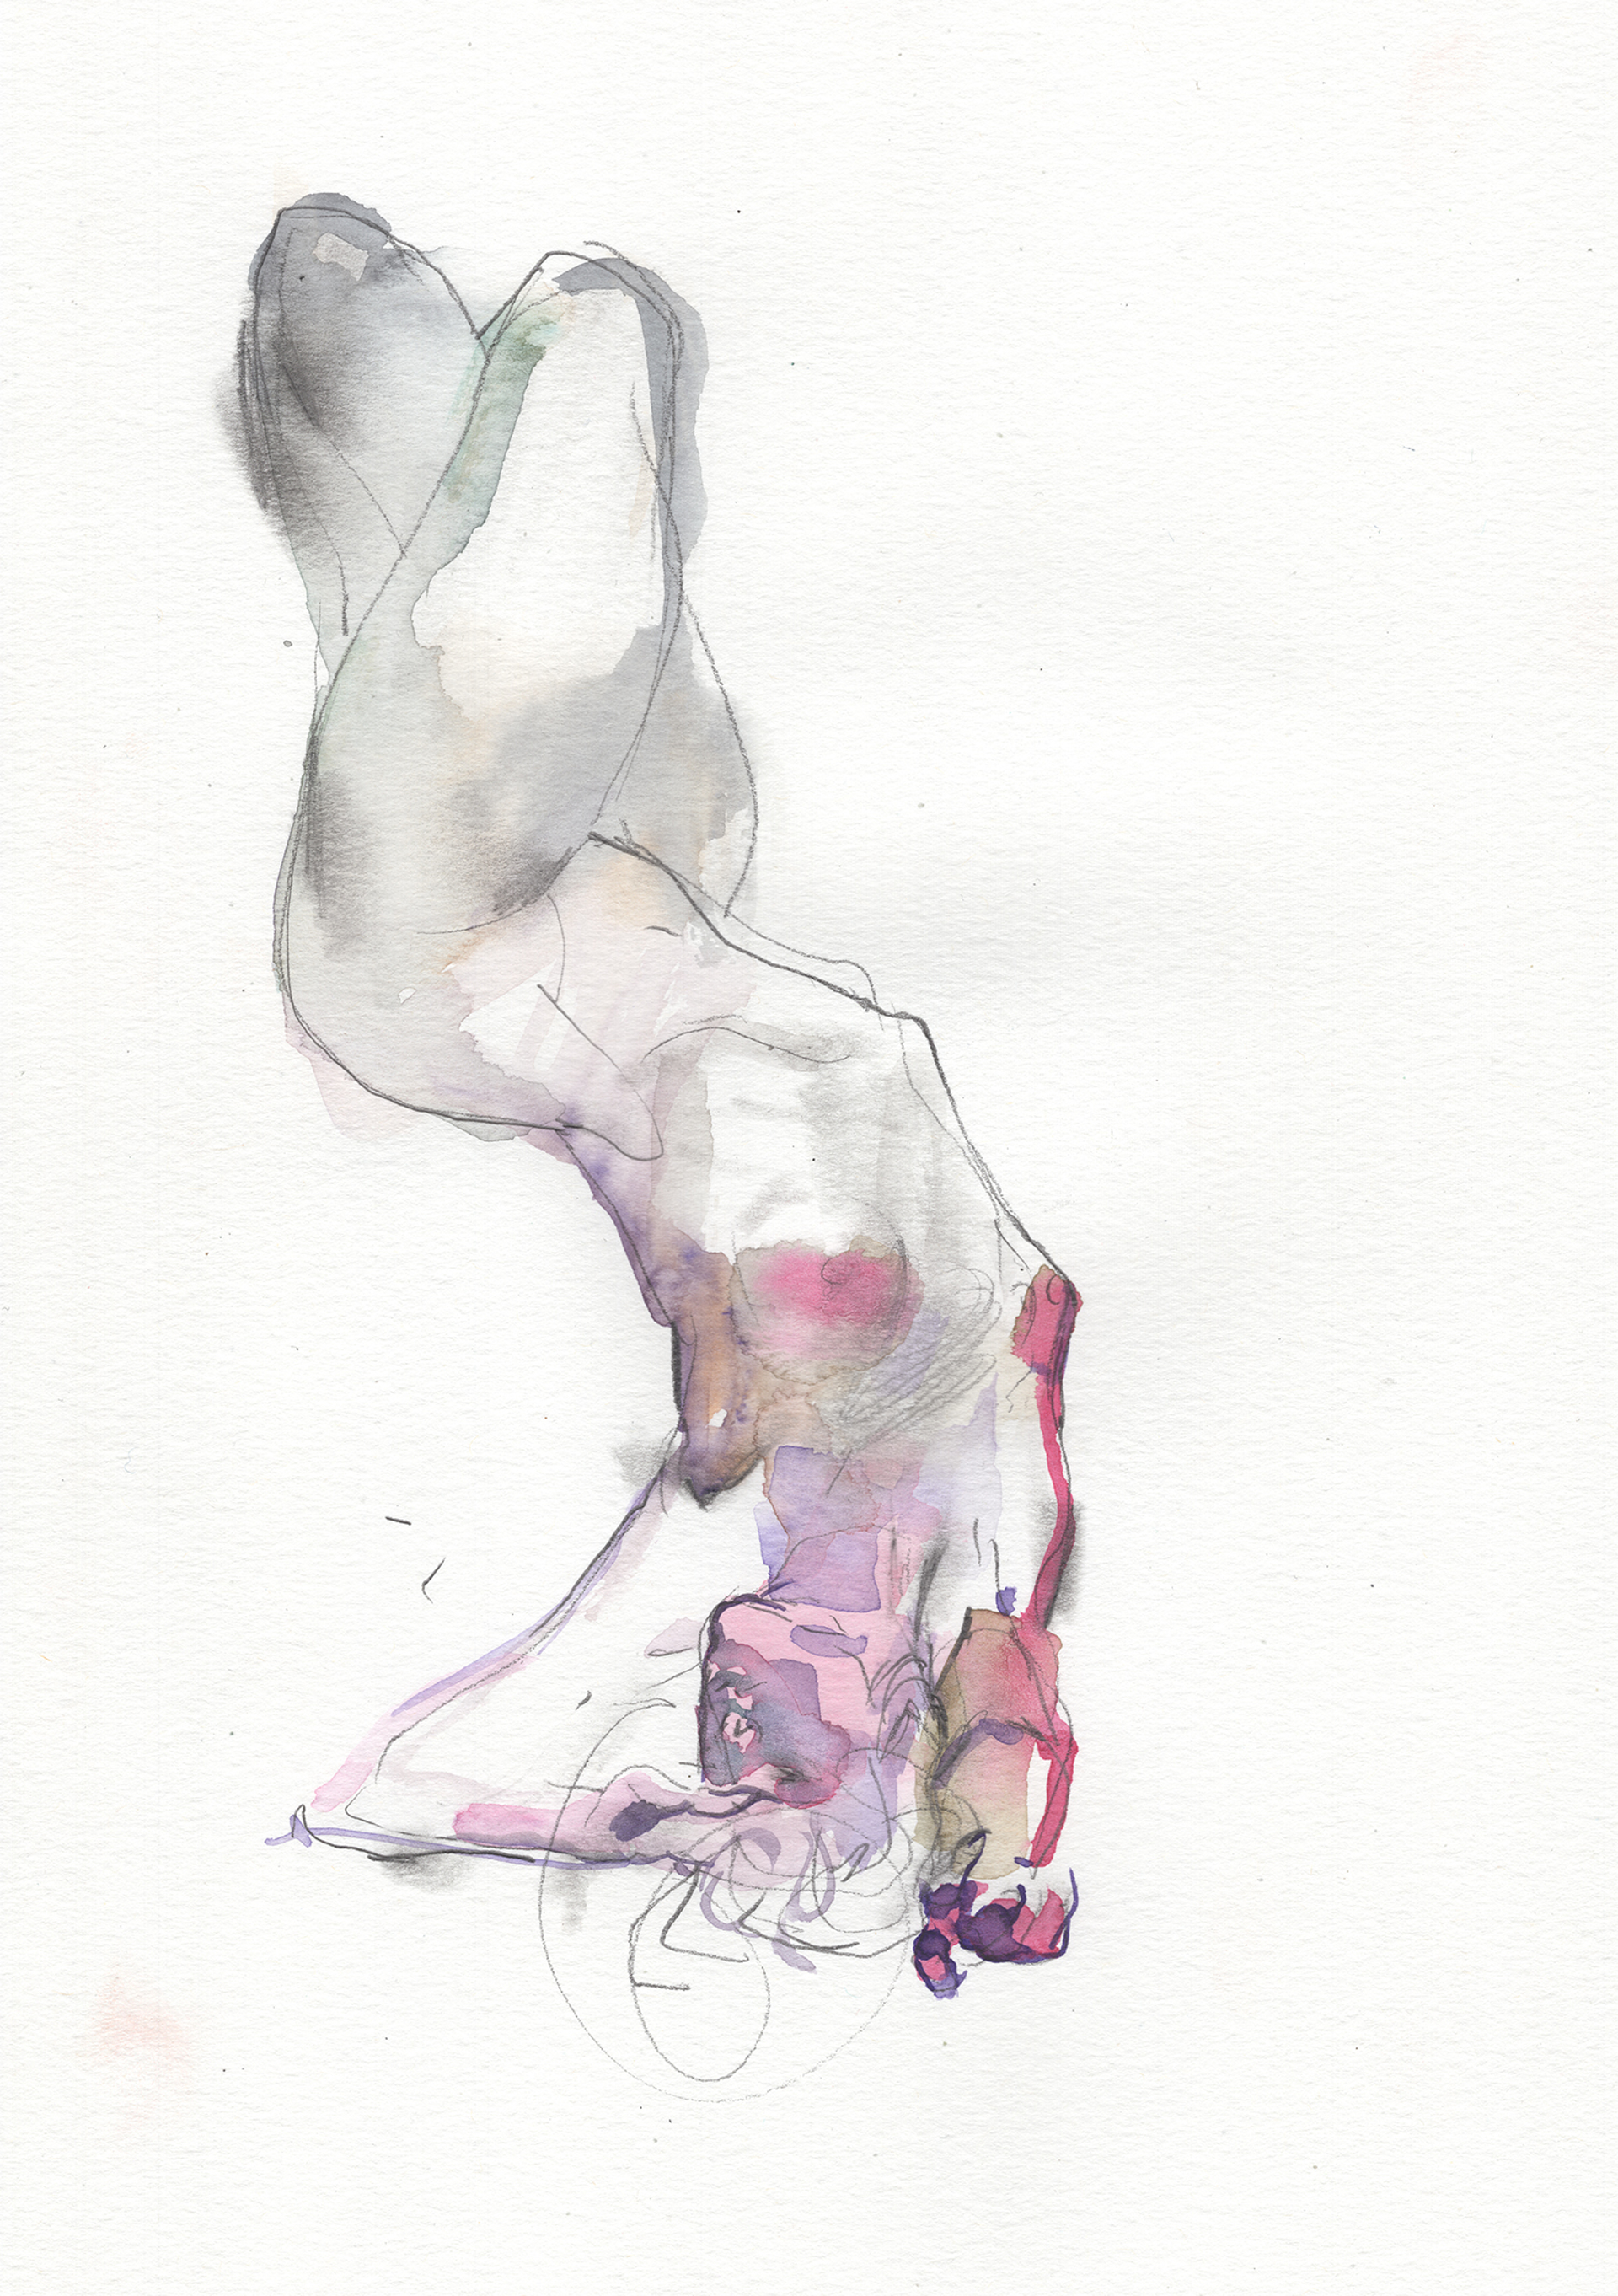 Watercolor Gesture 03 by Eliza Ivanova